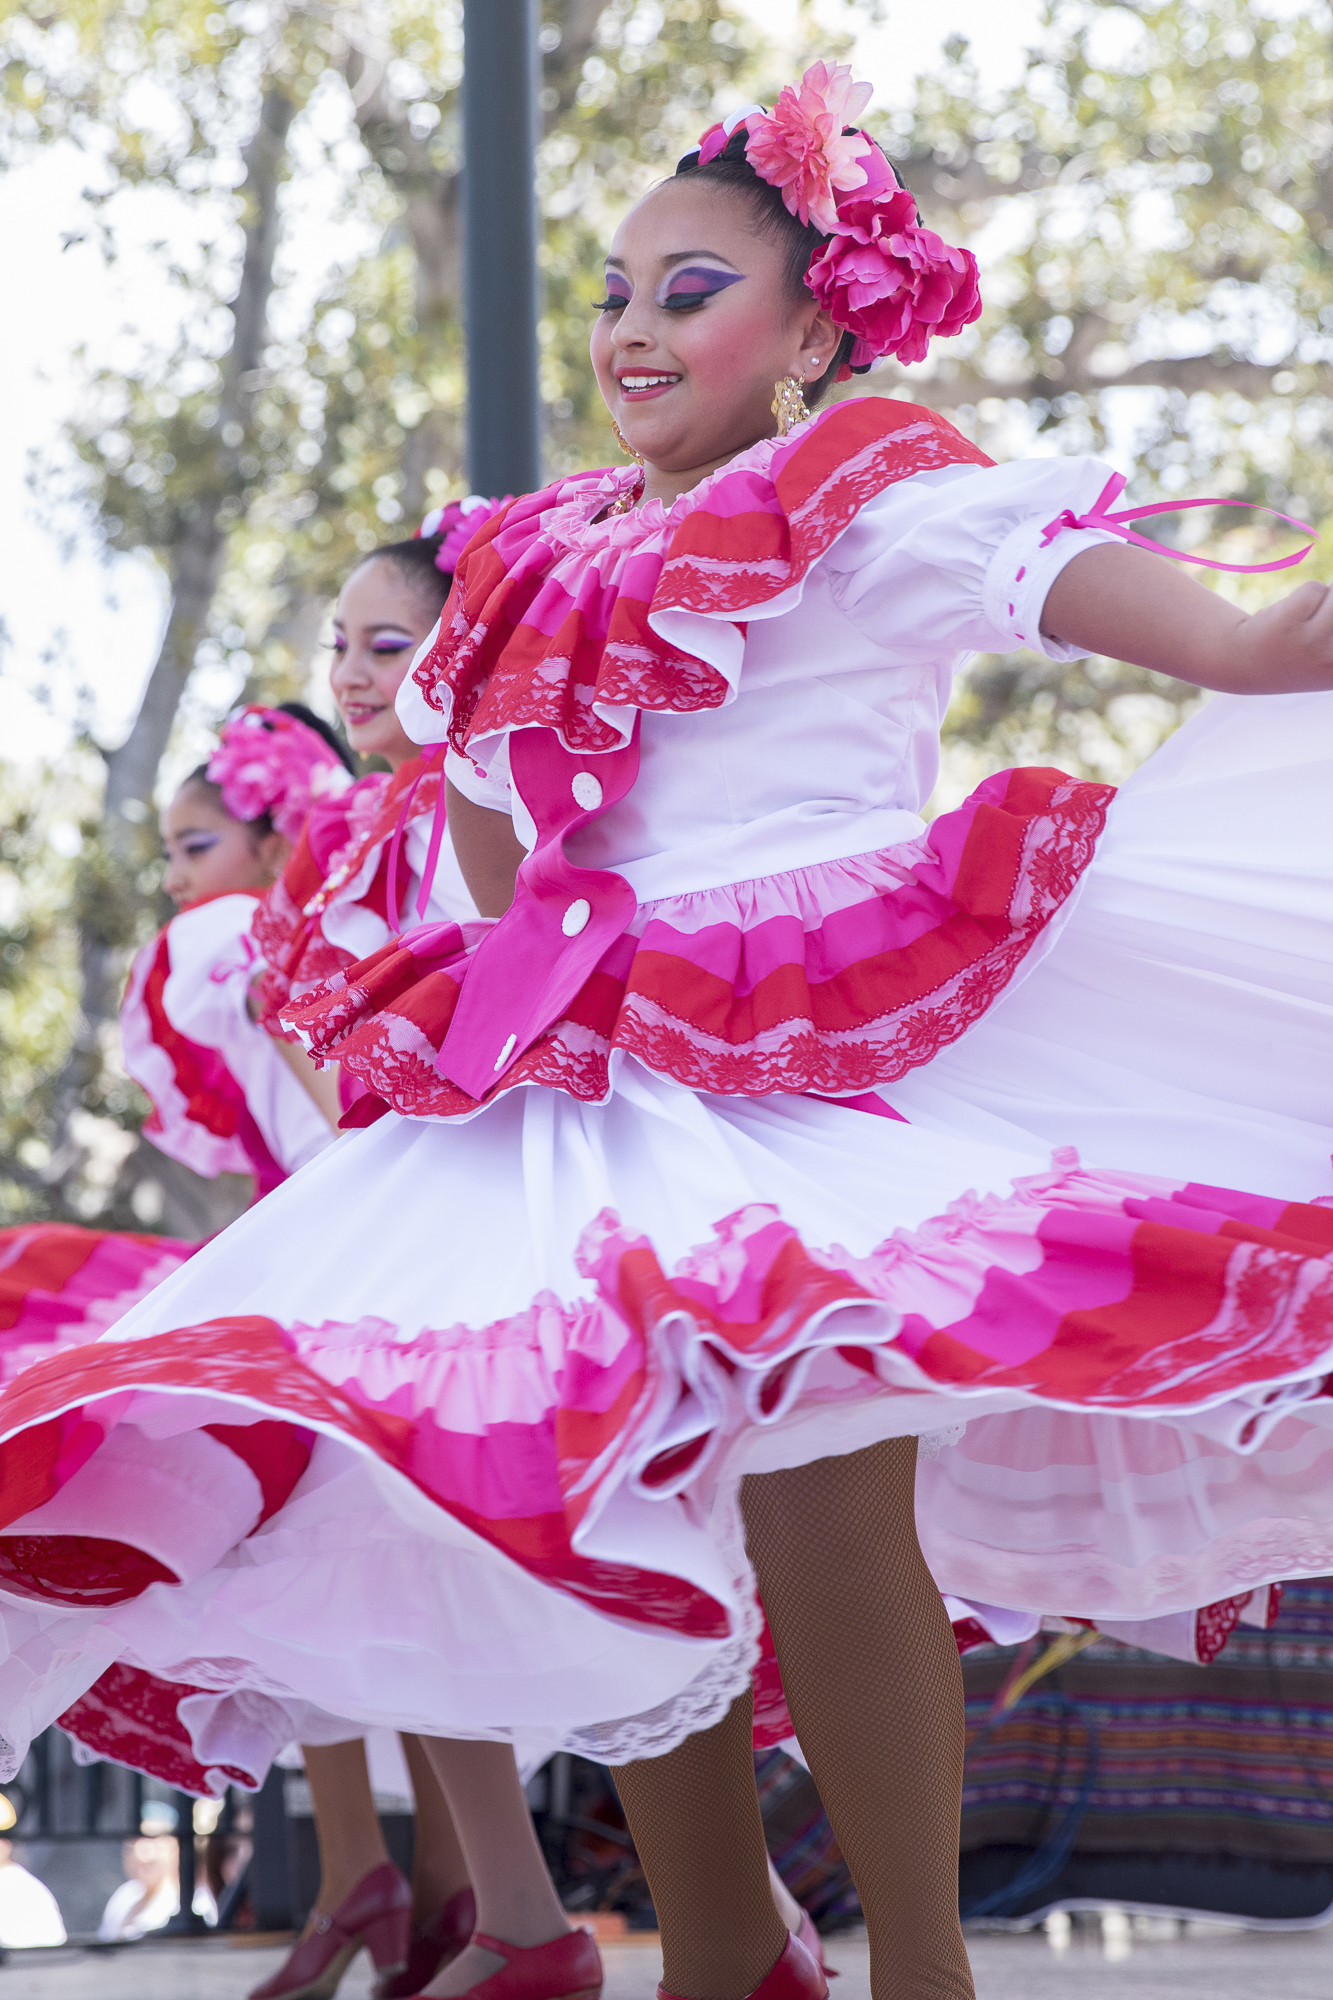 Children perform a traditional Folklora dance at Olvera Streets Cinco De Mayo celebration on May 5, 2018 in Downtown Los Angeles, California. (Zane Meyer-Thornton/Corsair Photo)